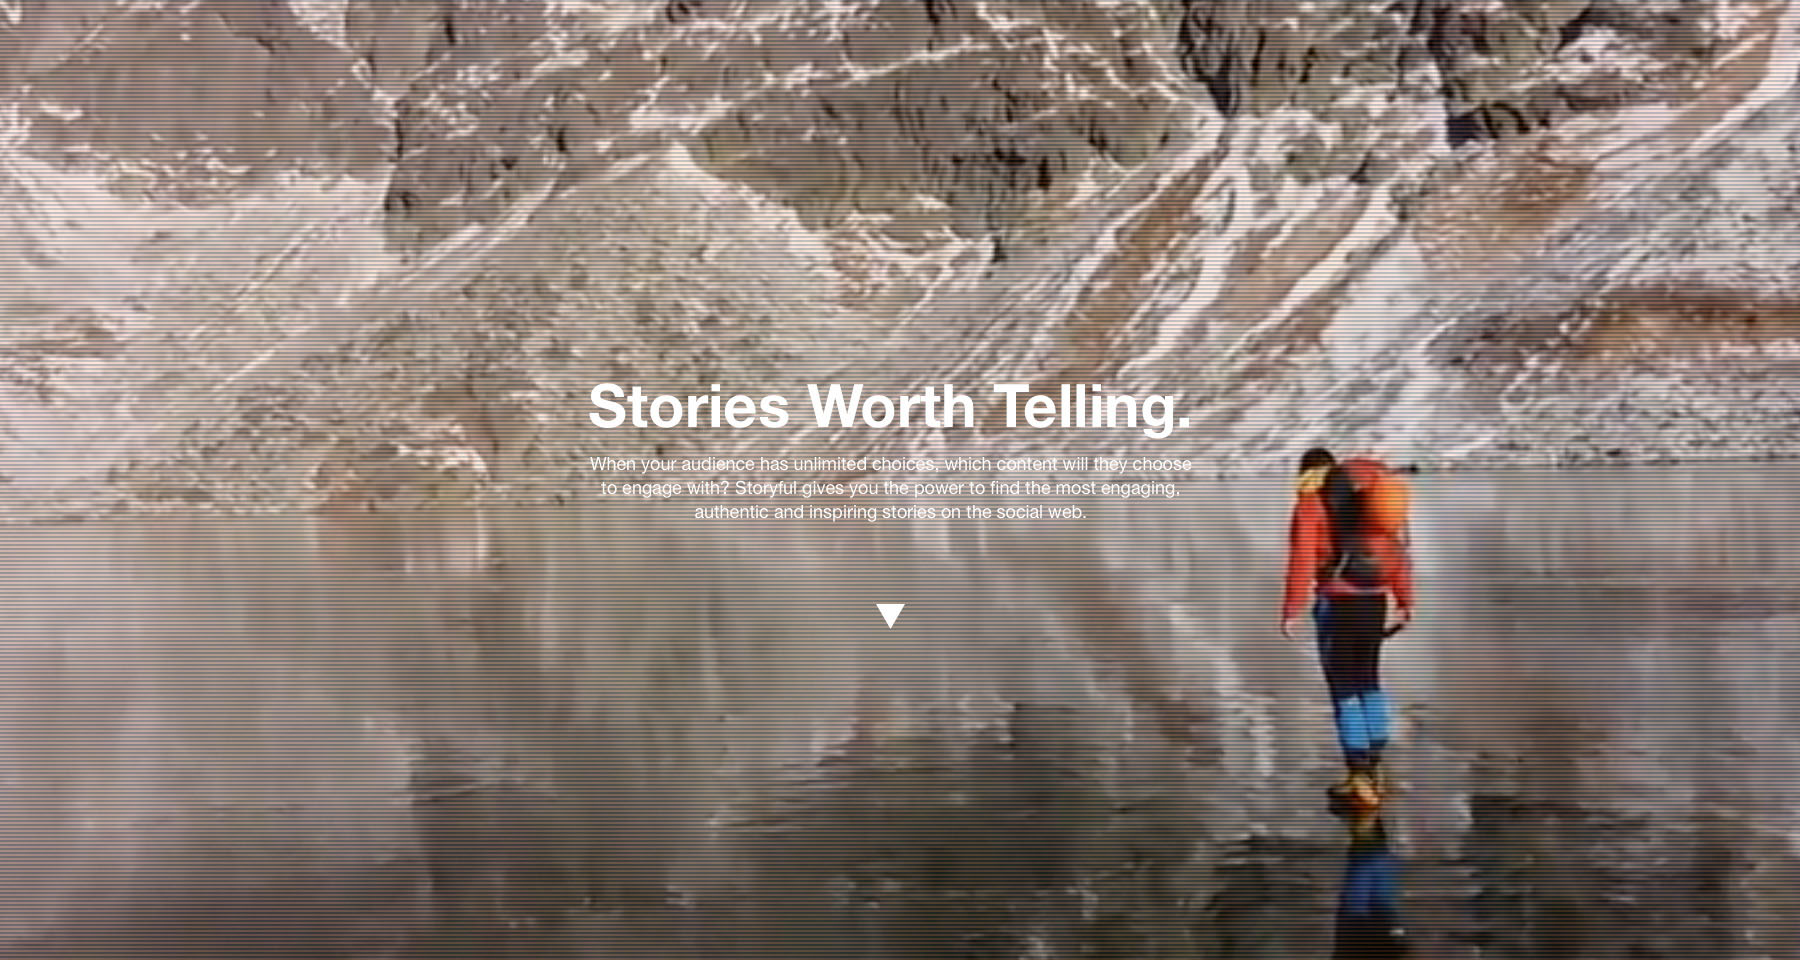 Start-up Storyful defines its innovative culture after News Corp acquisition